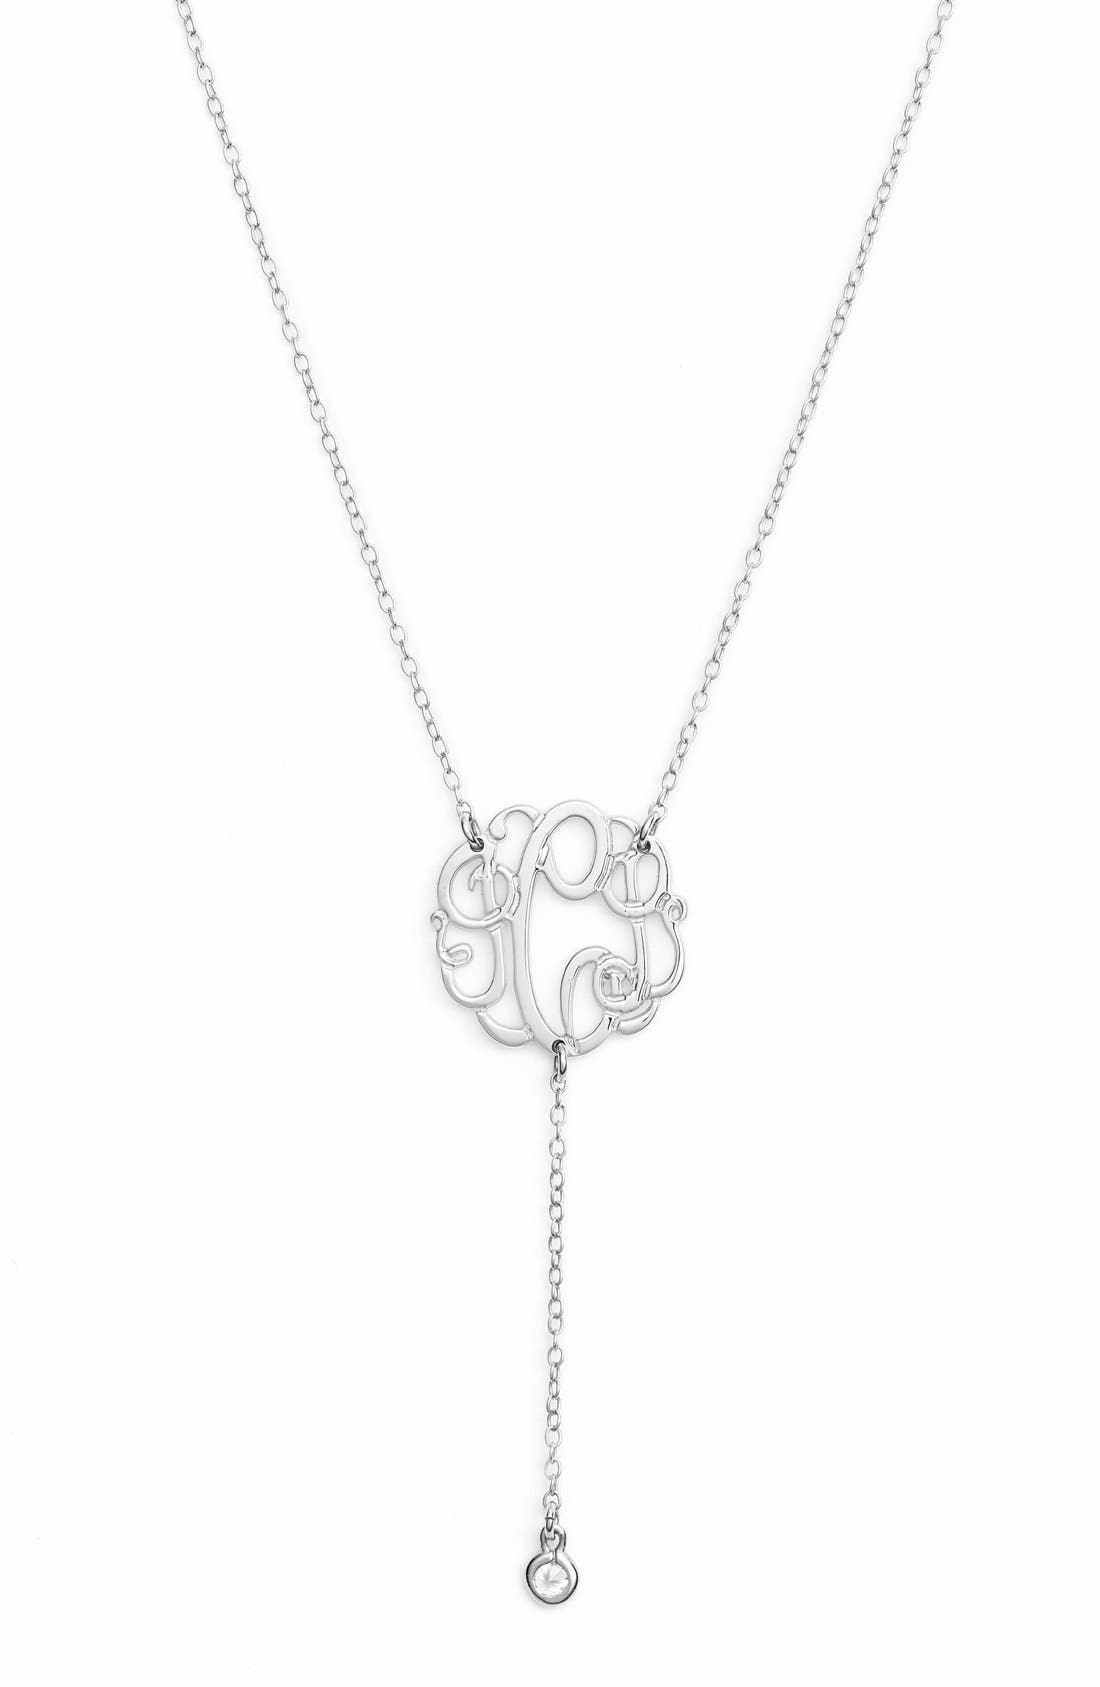 Personalized Three Initial Y-Necklace,                         Main,                         color, Silver